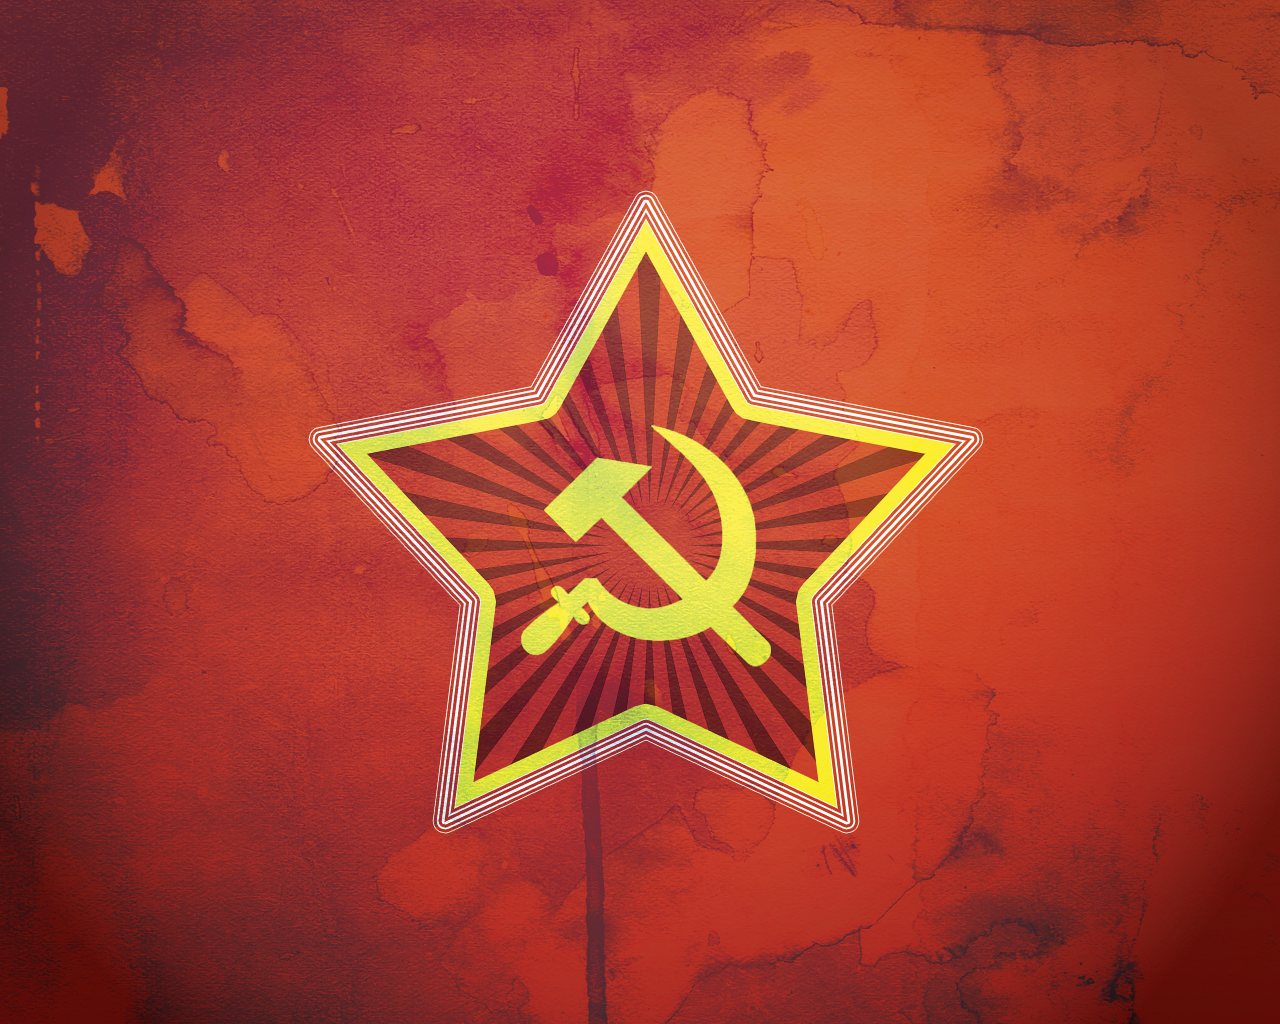 Soviet Star Wallpaper by spectravideo